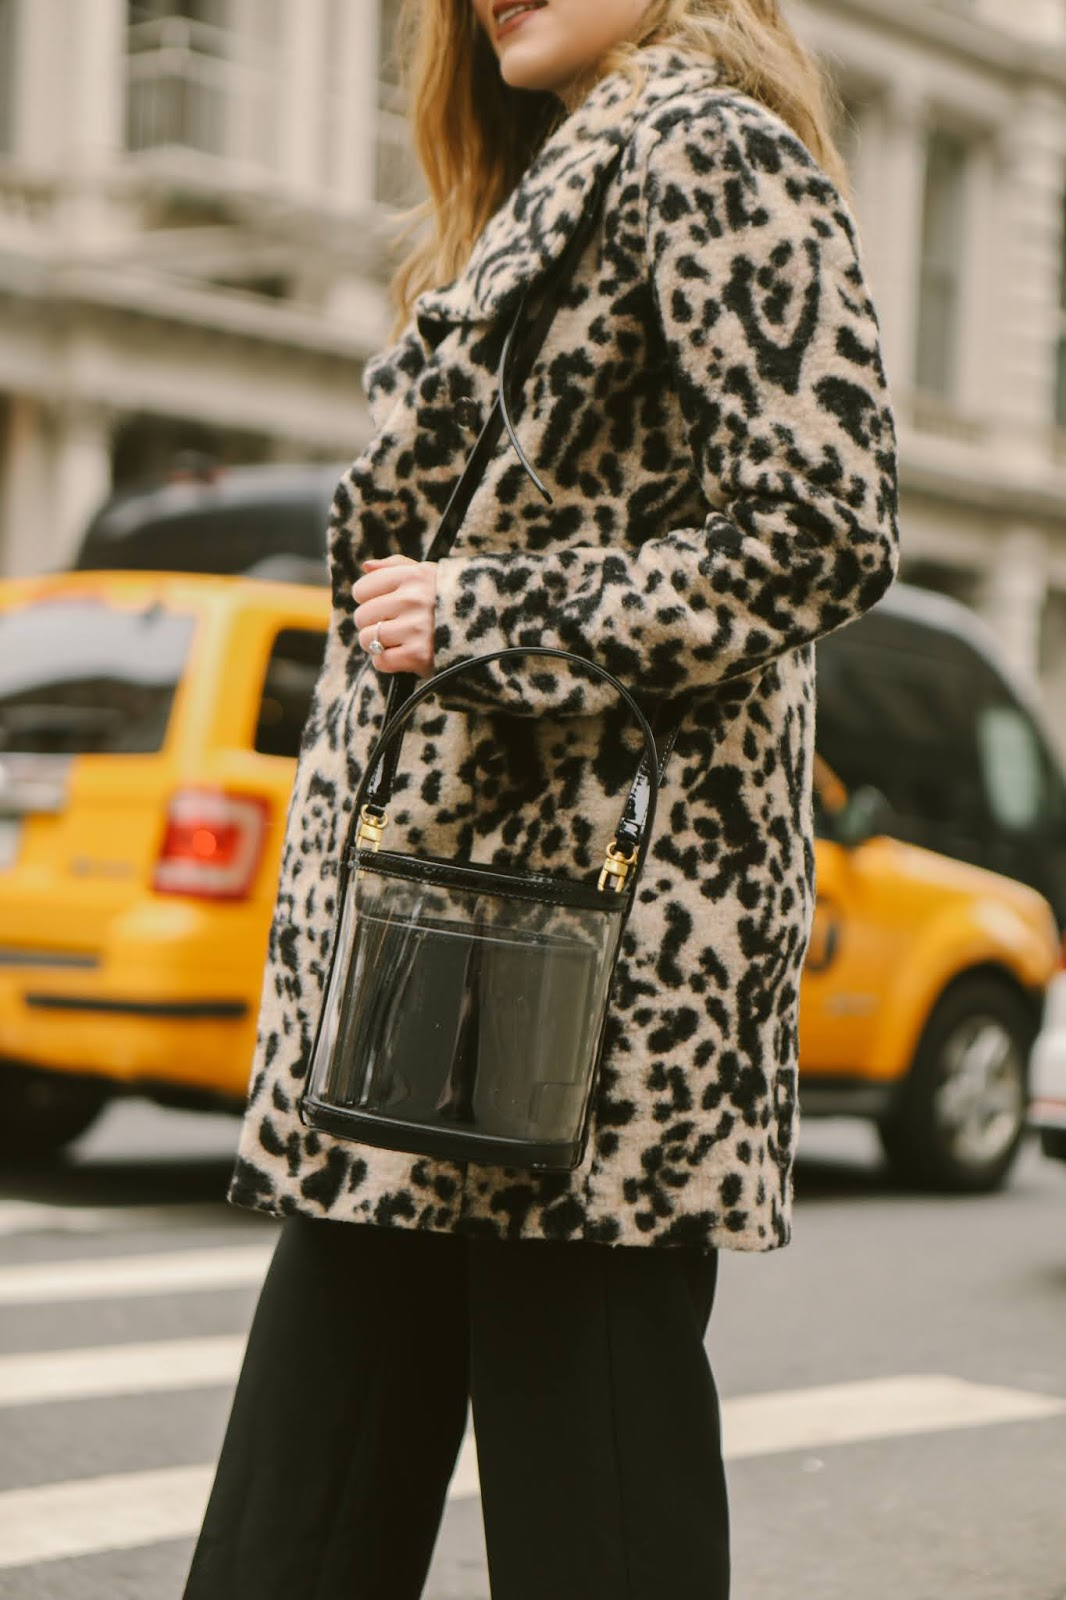 Nyc fashion blogger Kathleen Harper wearing a black and clear Stuad bucket bag.